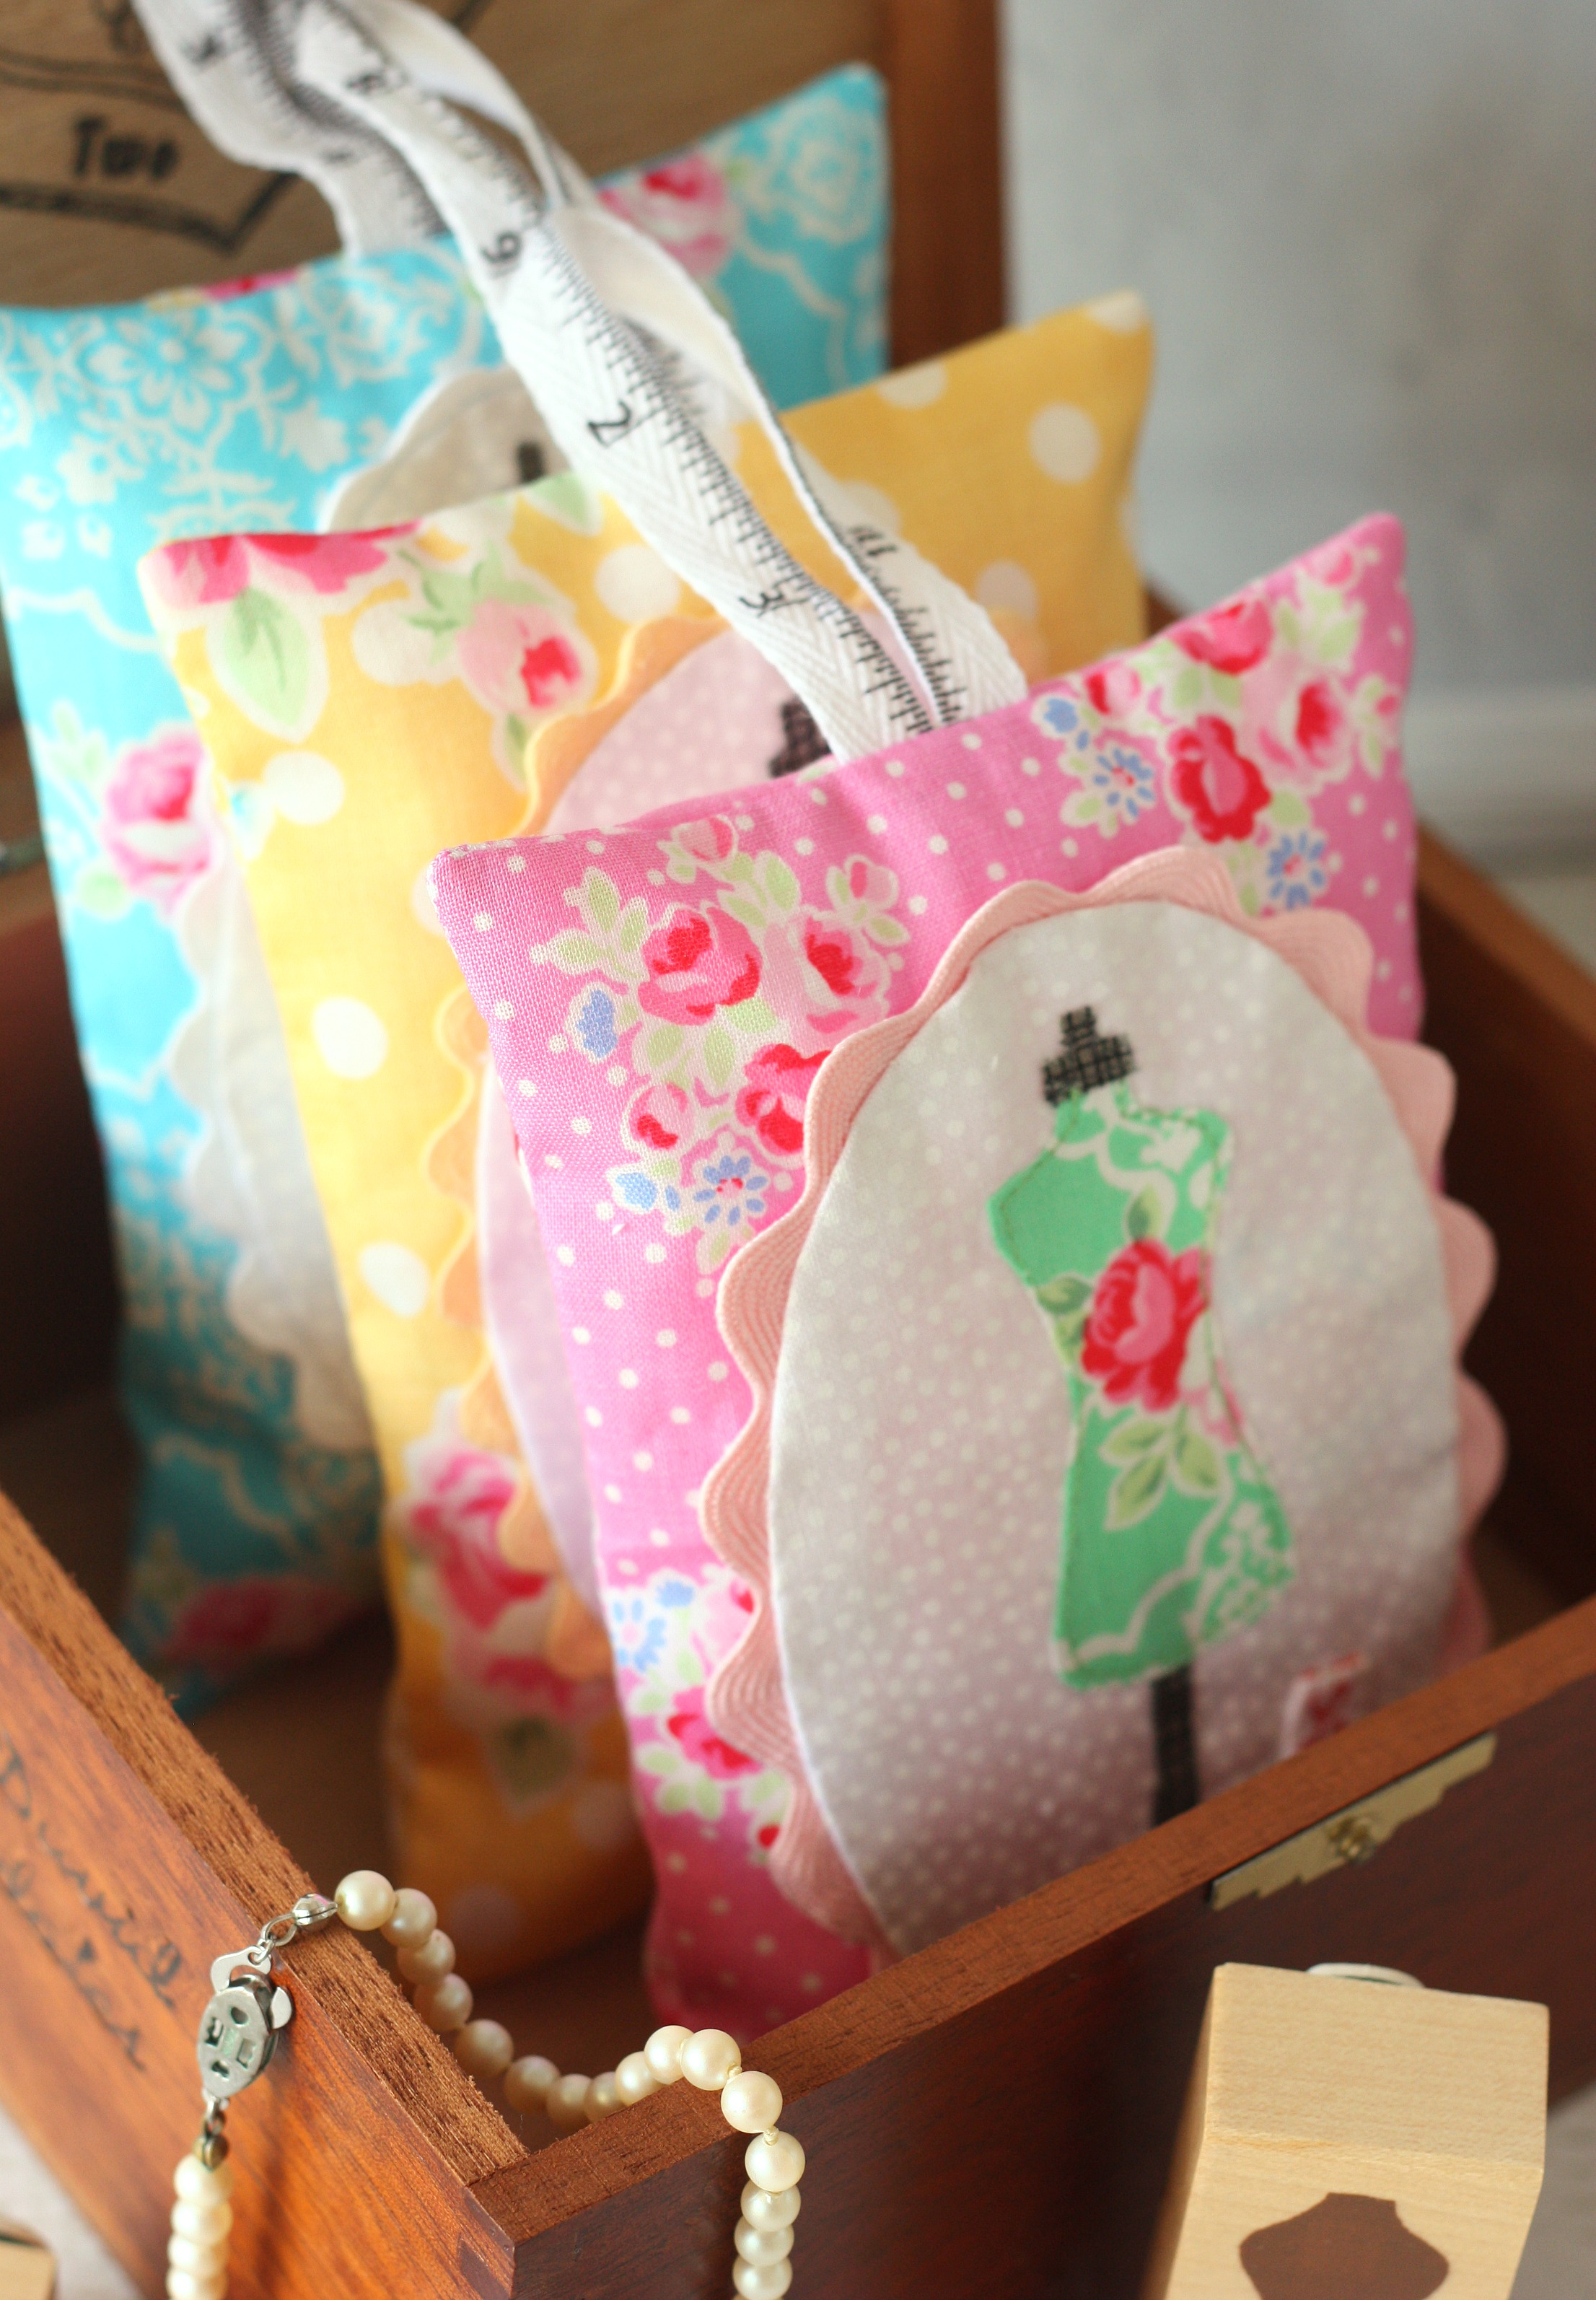 Dress Form Lavender Sachets, from A Spoonful of Sugar by Lisa Cox